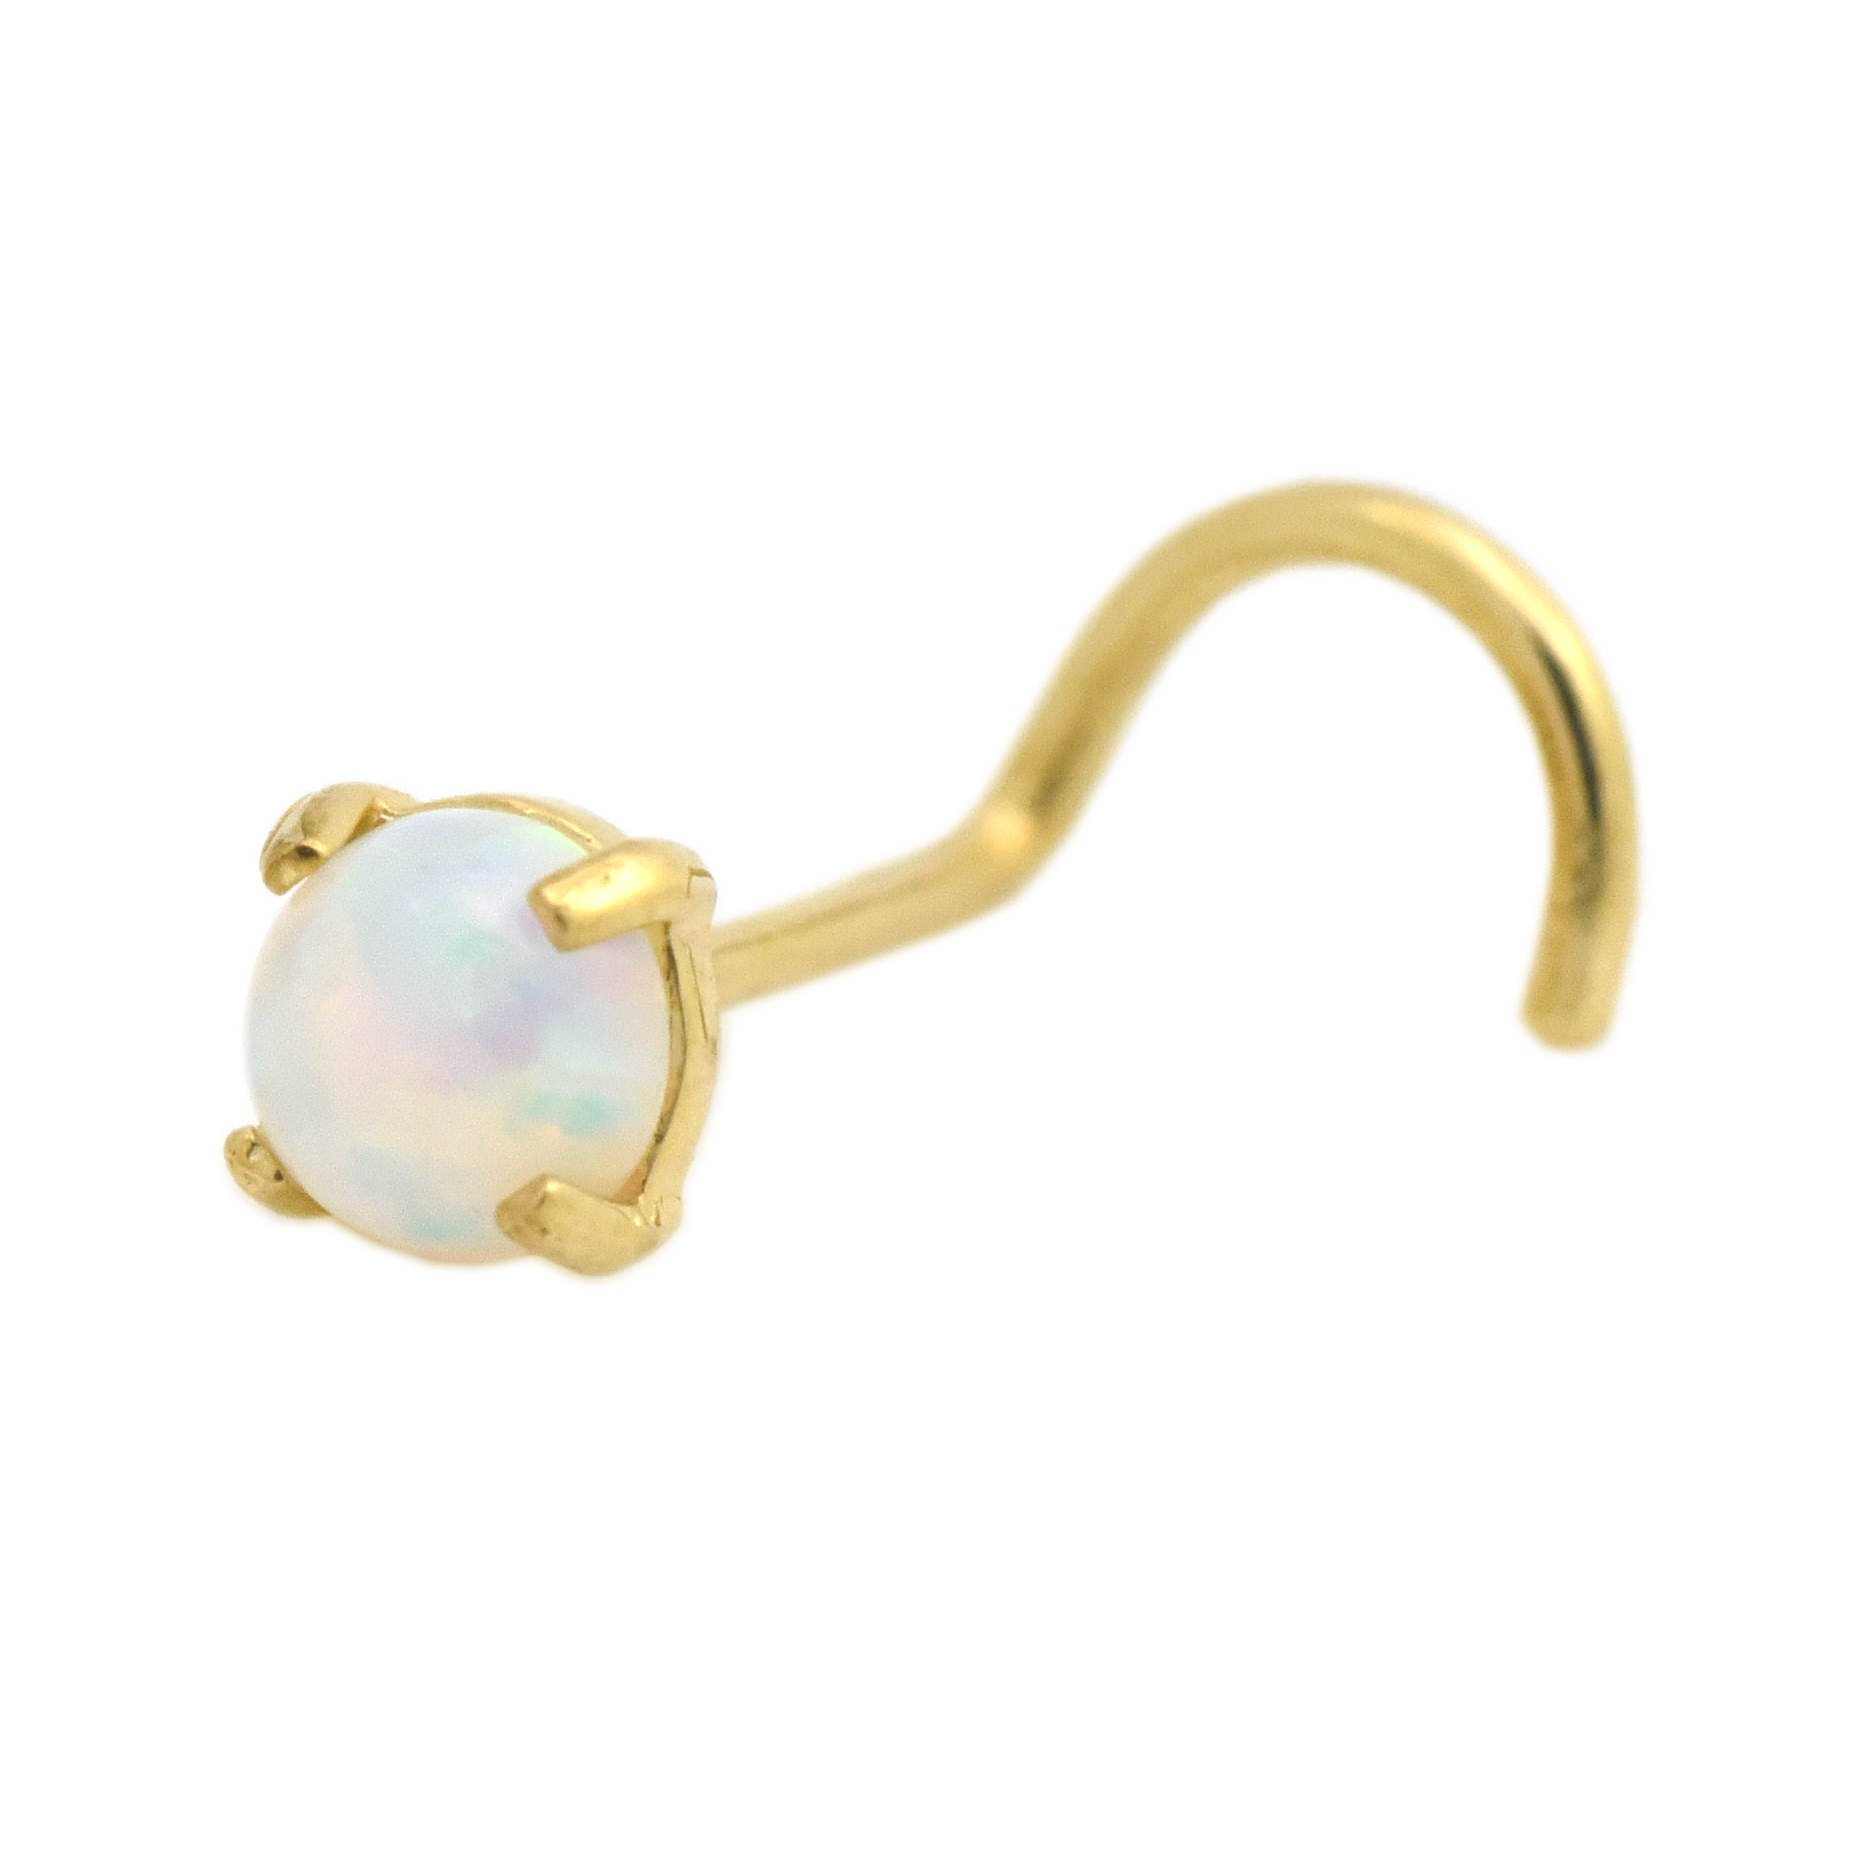 Trendy Earrings by WSI 14k Gold Nose Screw Piercing Stud 3.5mm Lab Created Opal 20 Gauge Jewelry